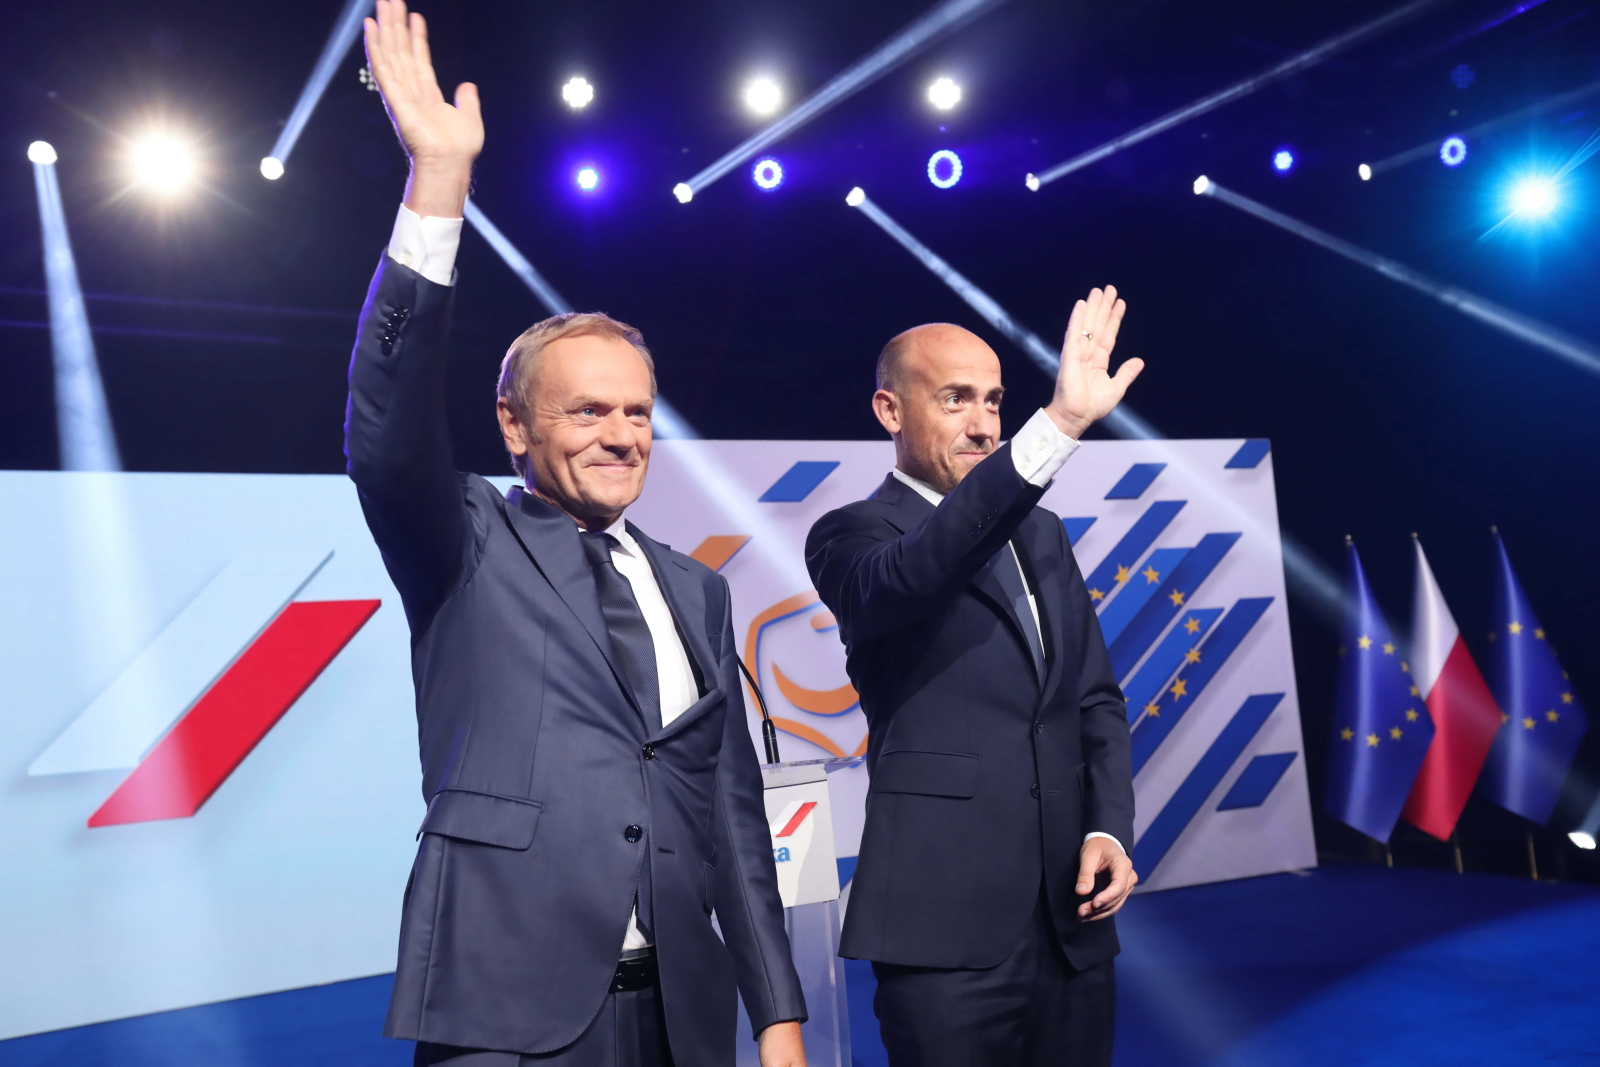 Civic Platform leader Borys Budka (R) and the partys co-founder, now EPP leader Donald Tusk (L) at Civic Platforms National Council in Warsaw